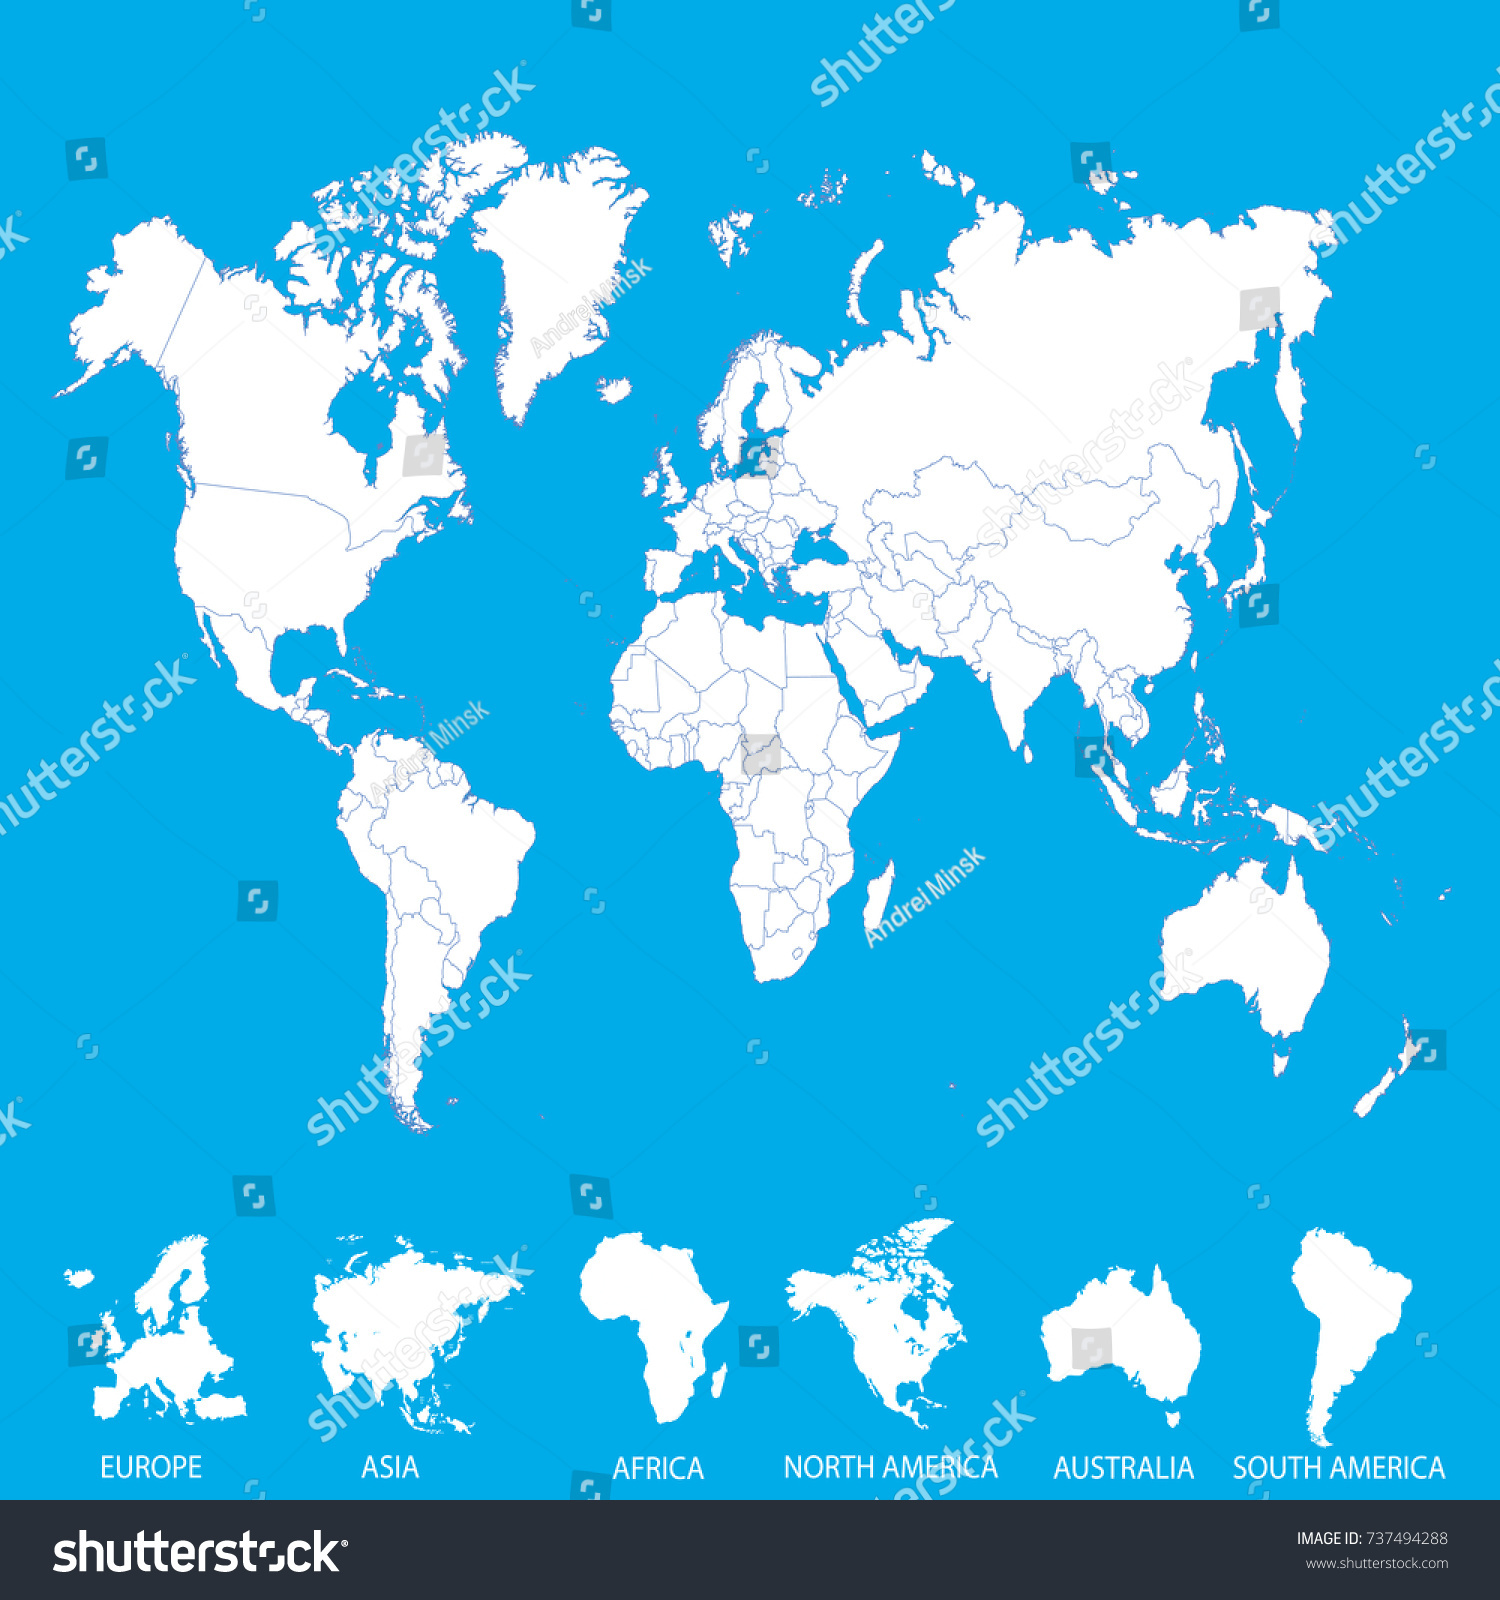 World map europe asia america africa vectores en stock 737494288 world map europe asia america africa australia gumiabroncs Images